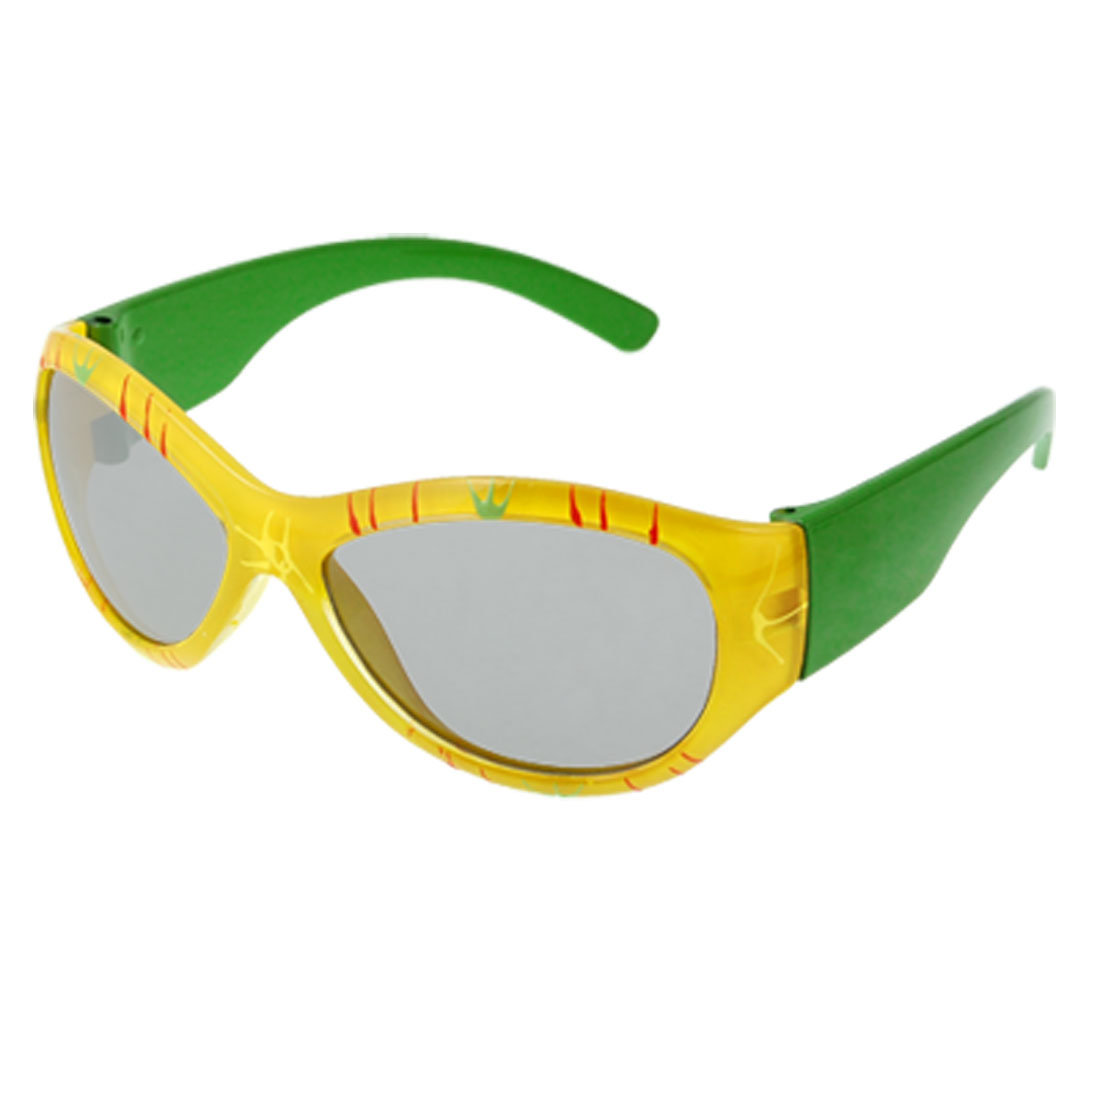 Yellow Printed Rim Green Plastic Arm Sunglasses for Children